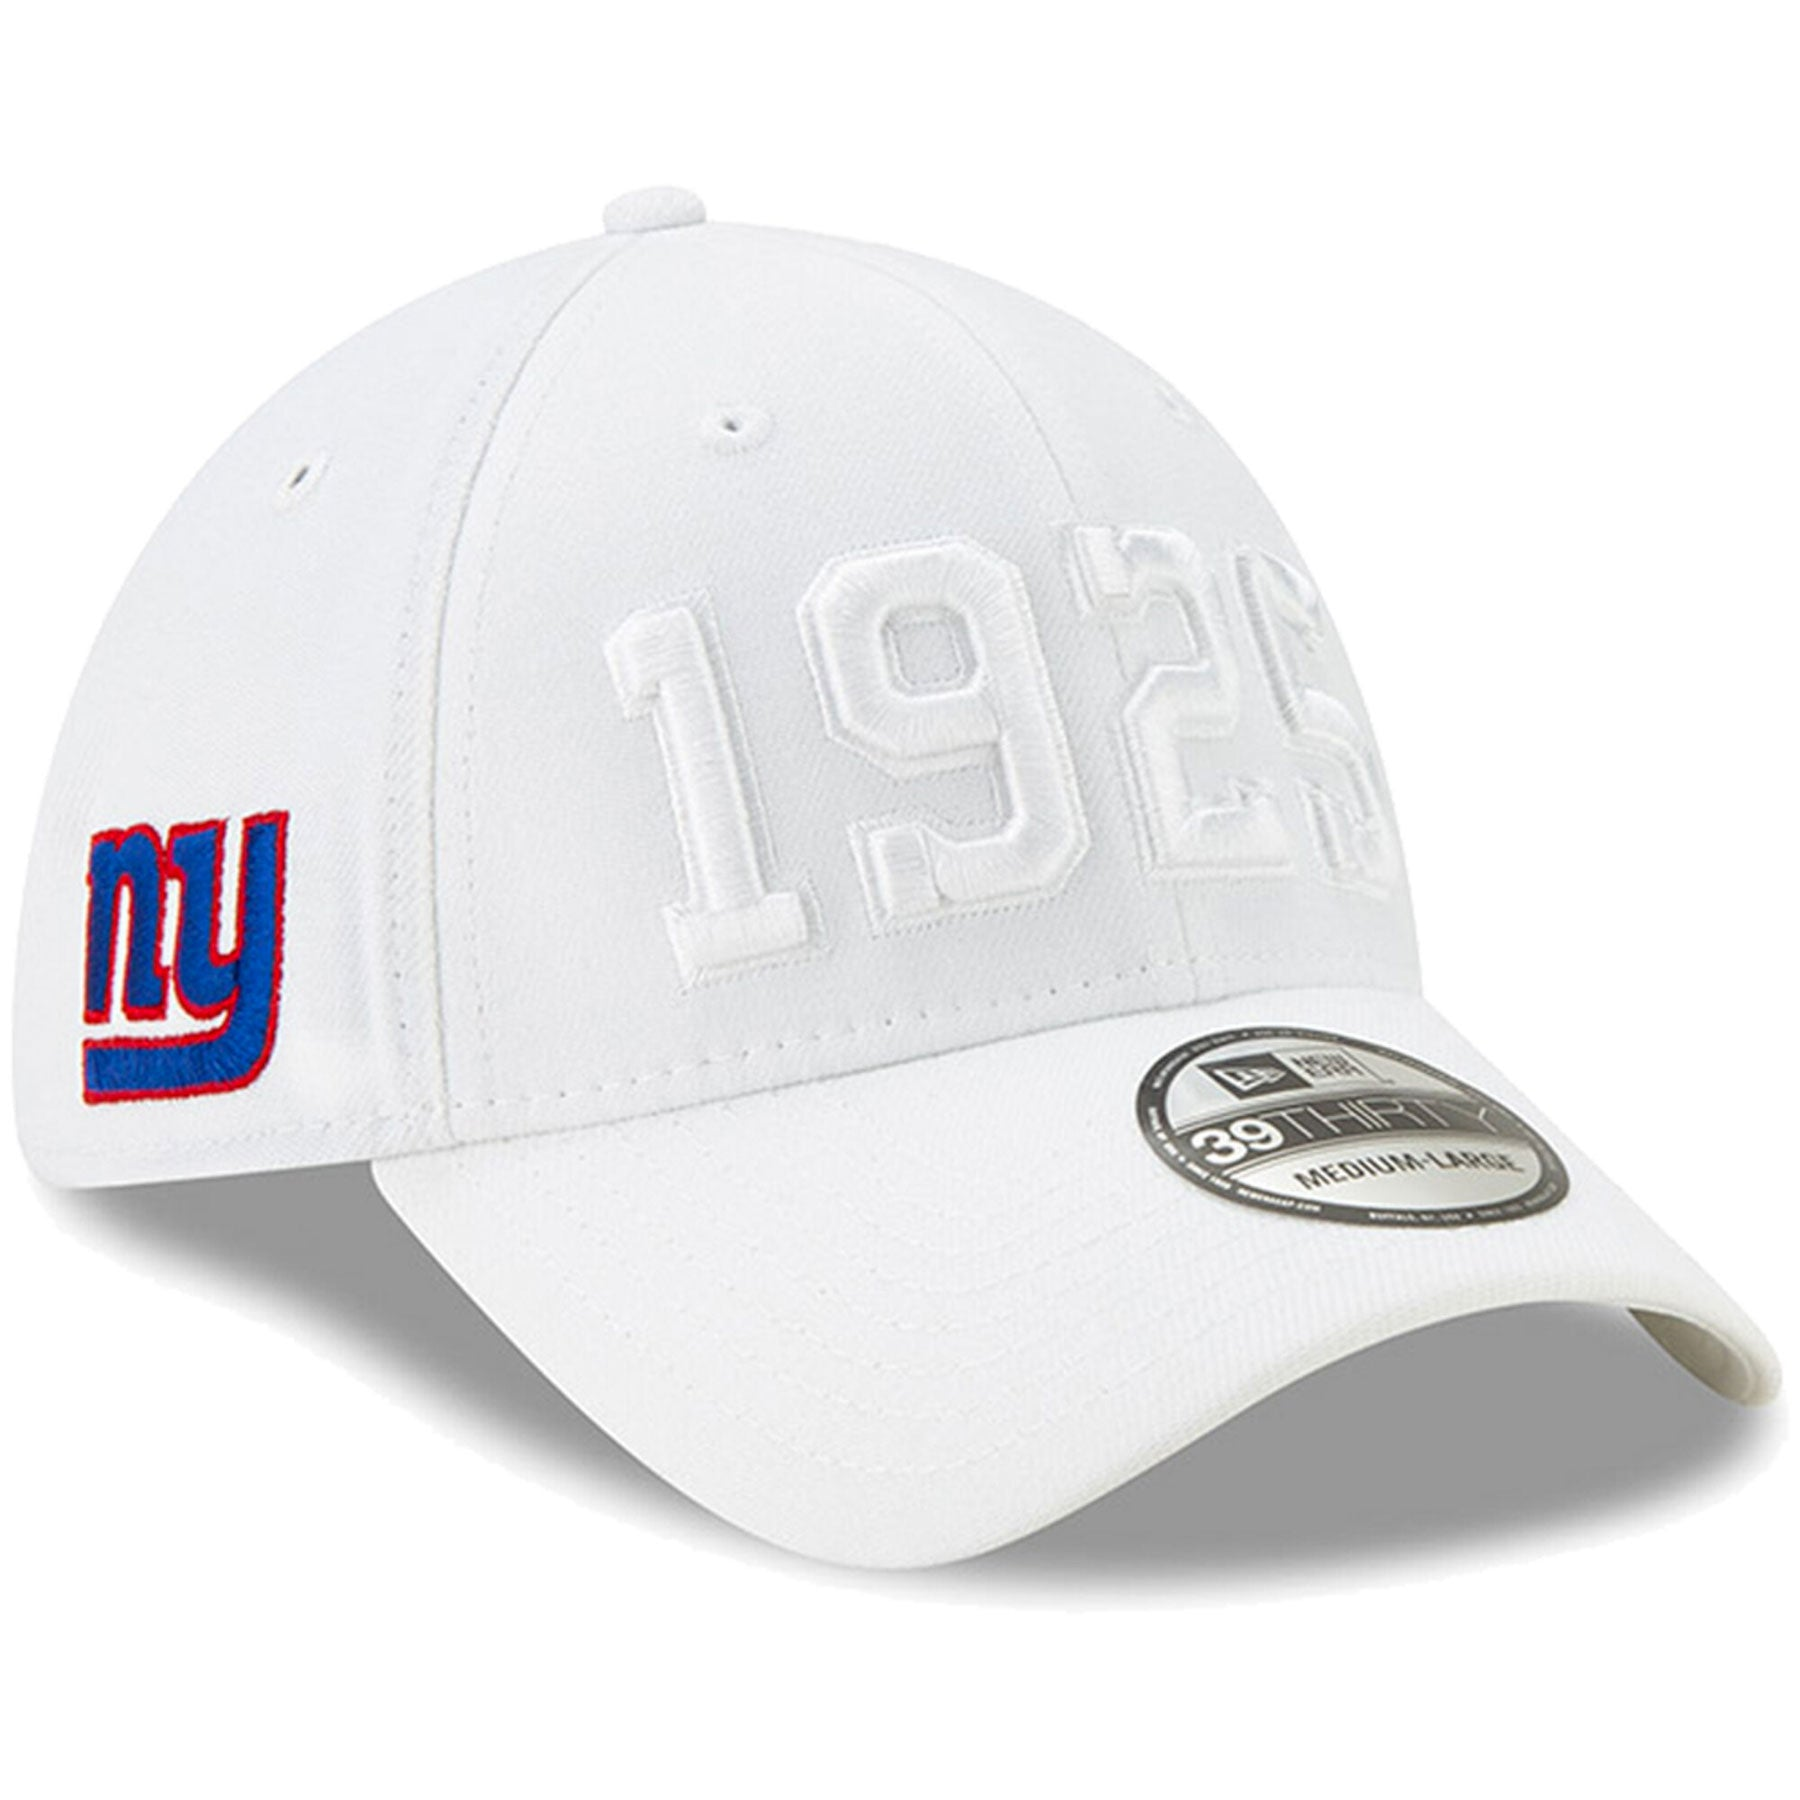 d4166216 New York Giants New Era 2019 NFL On Field Sideline Color Rush 39THIRTY  White Flex Hat